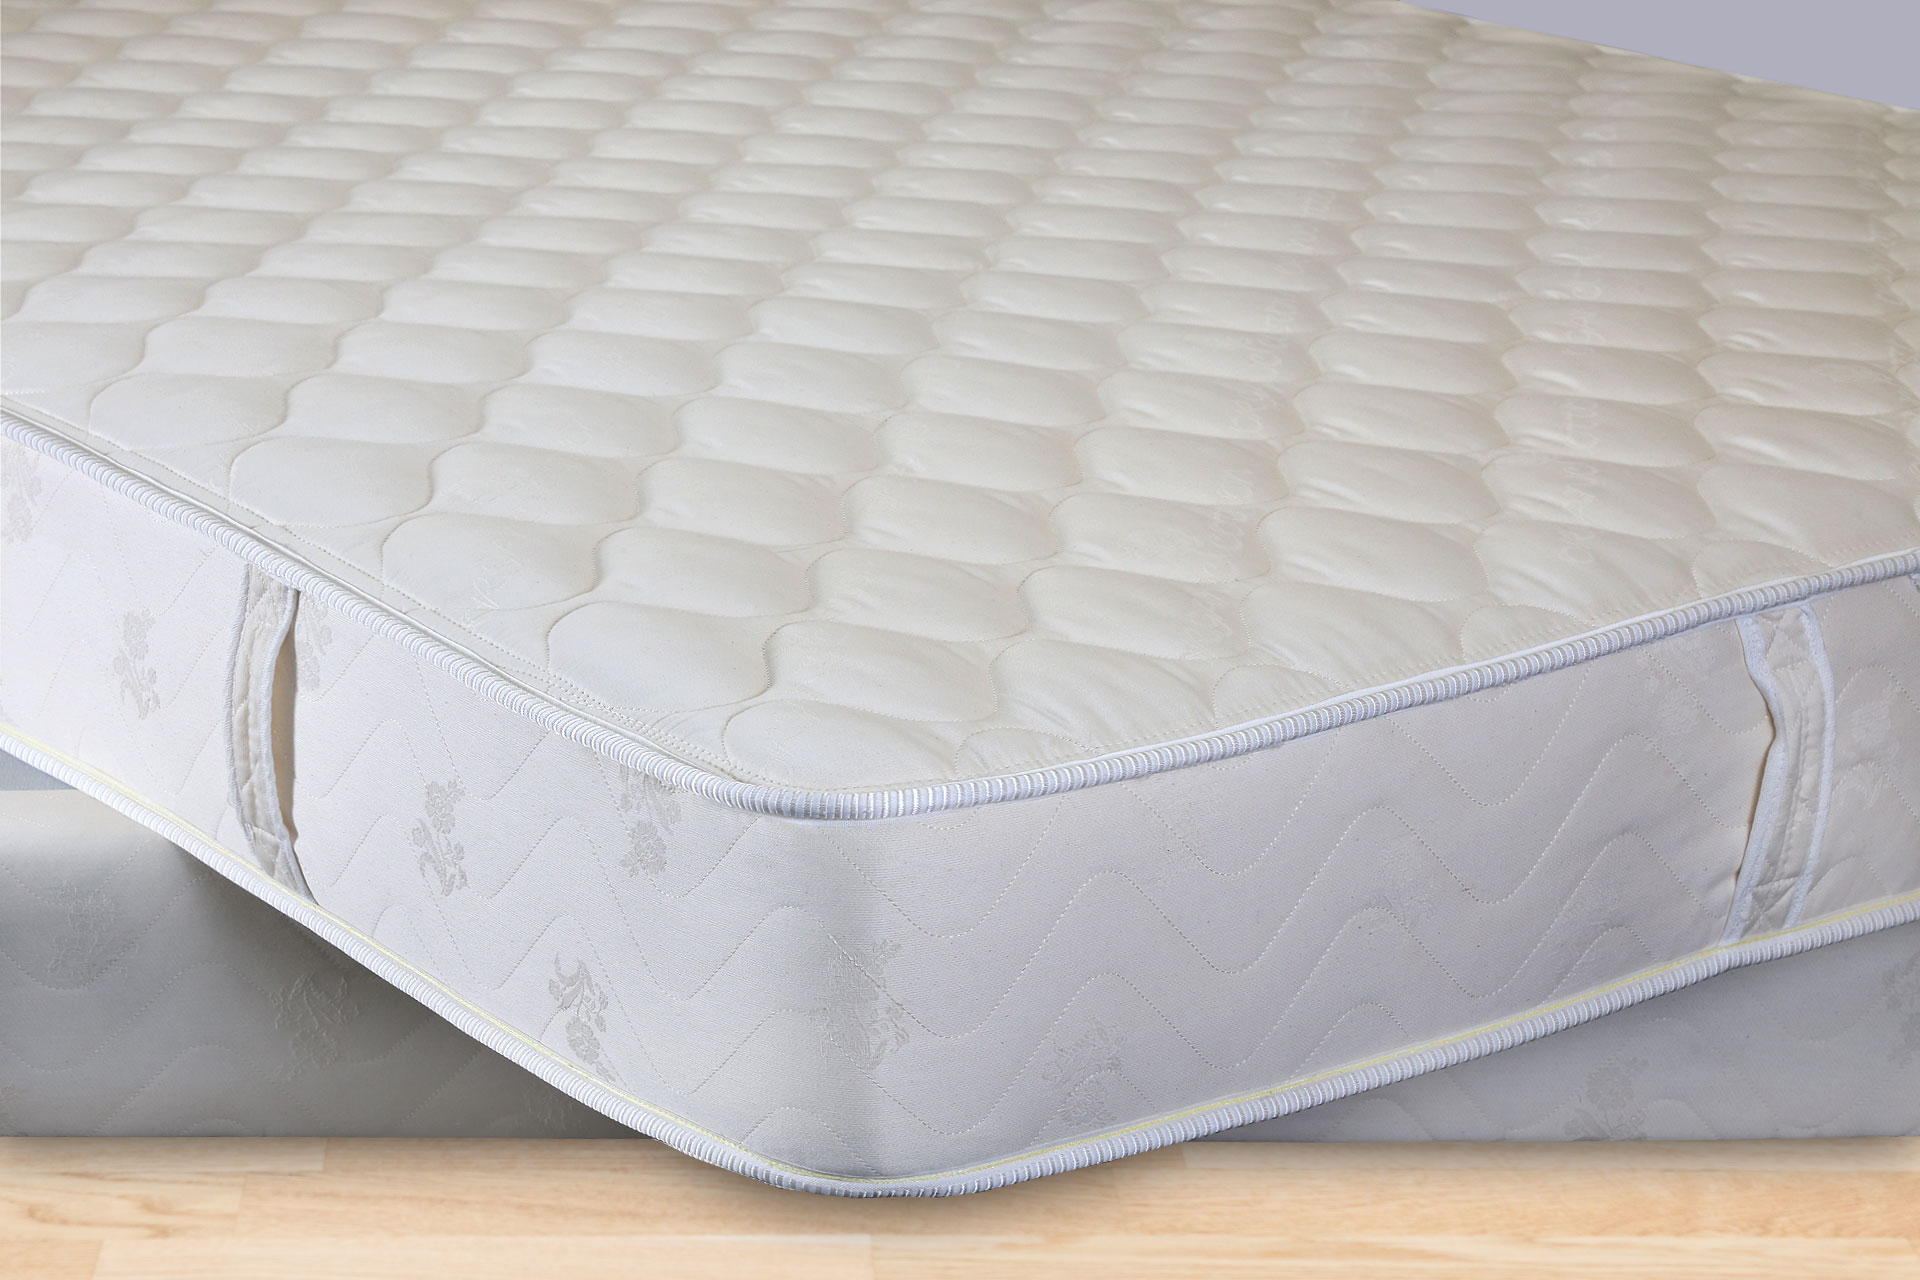 Talalay Natural Latex Chemical Free Mattress